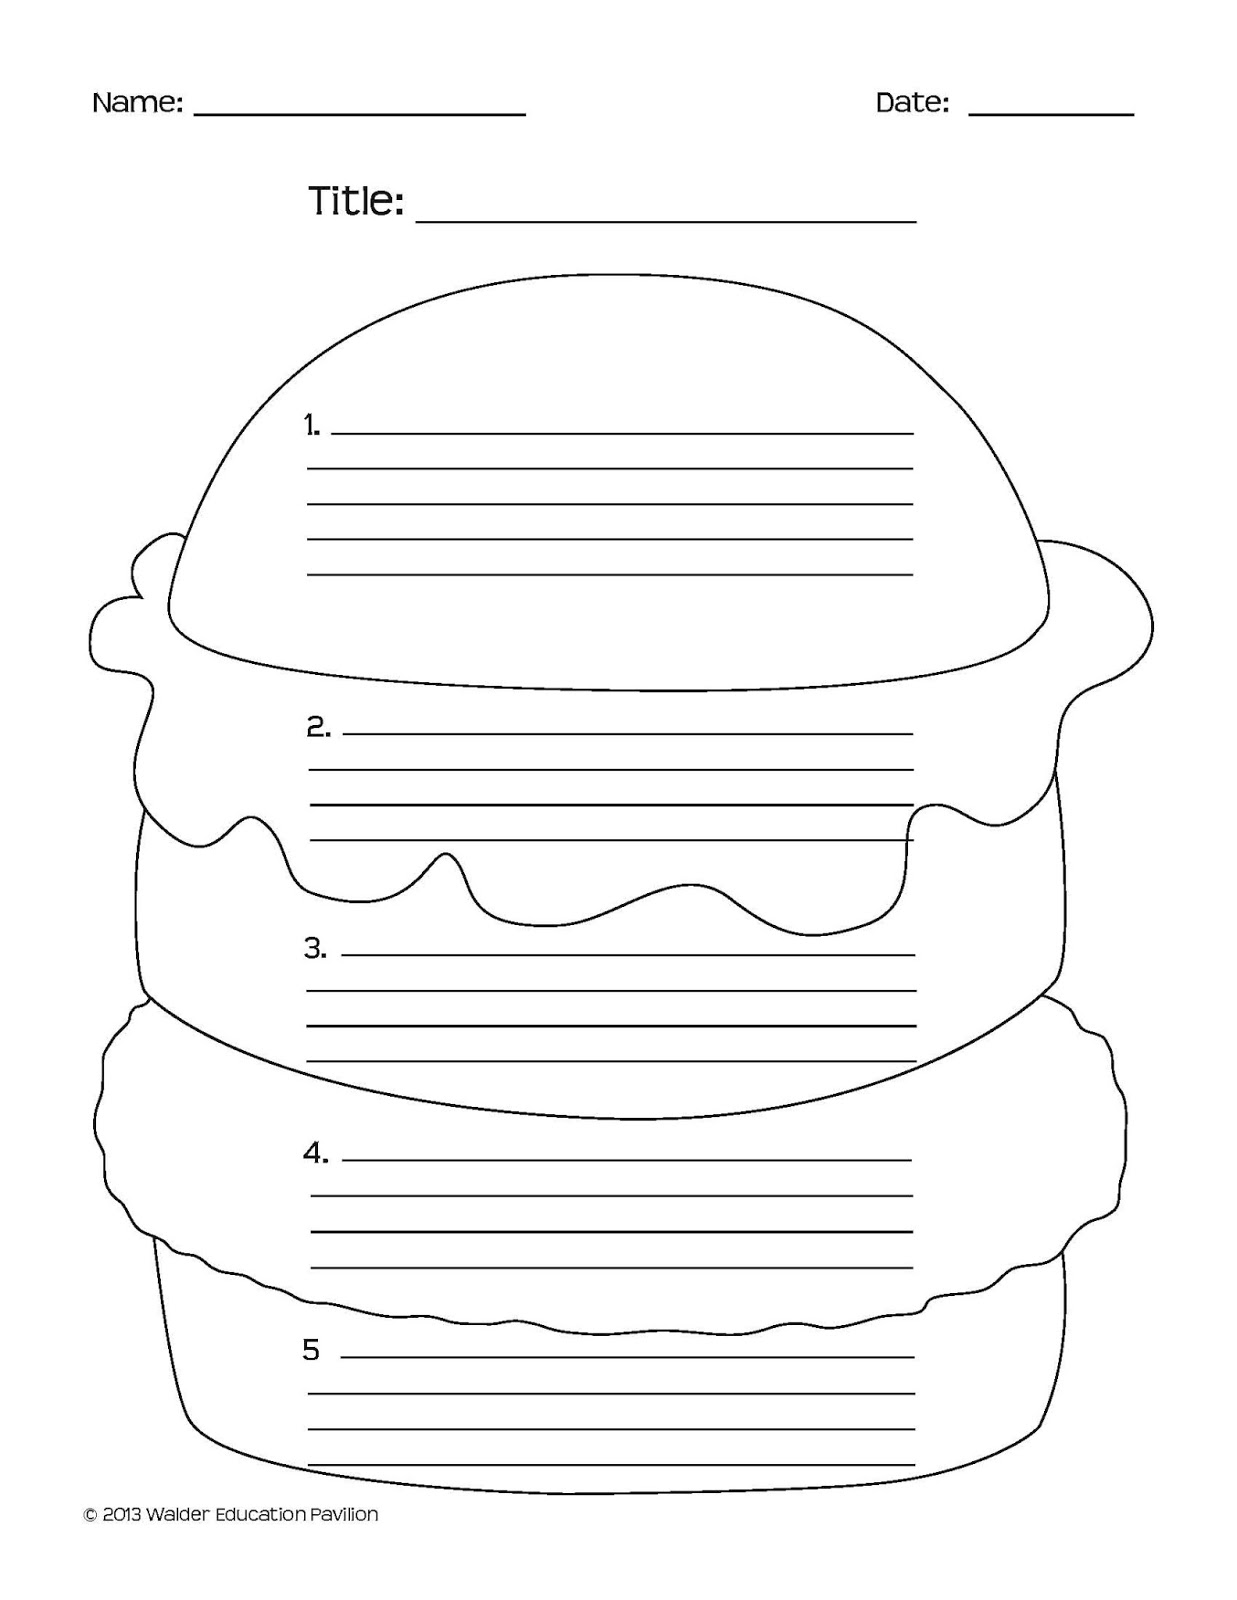 Hamburger essay worksheet